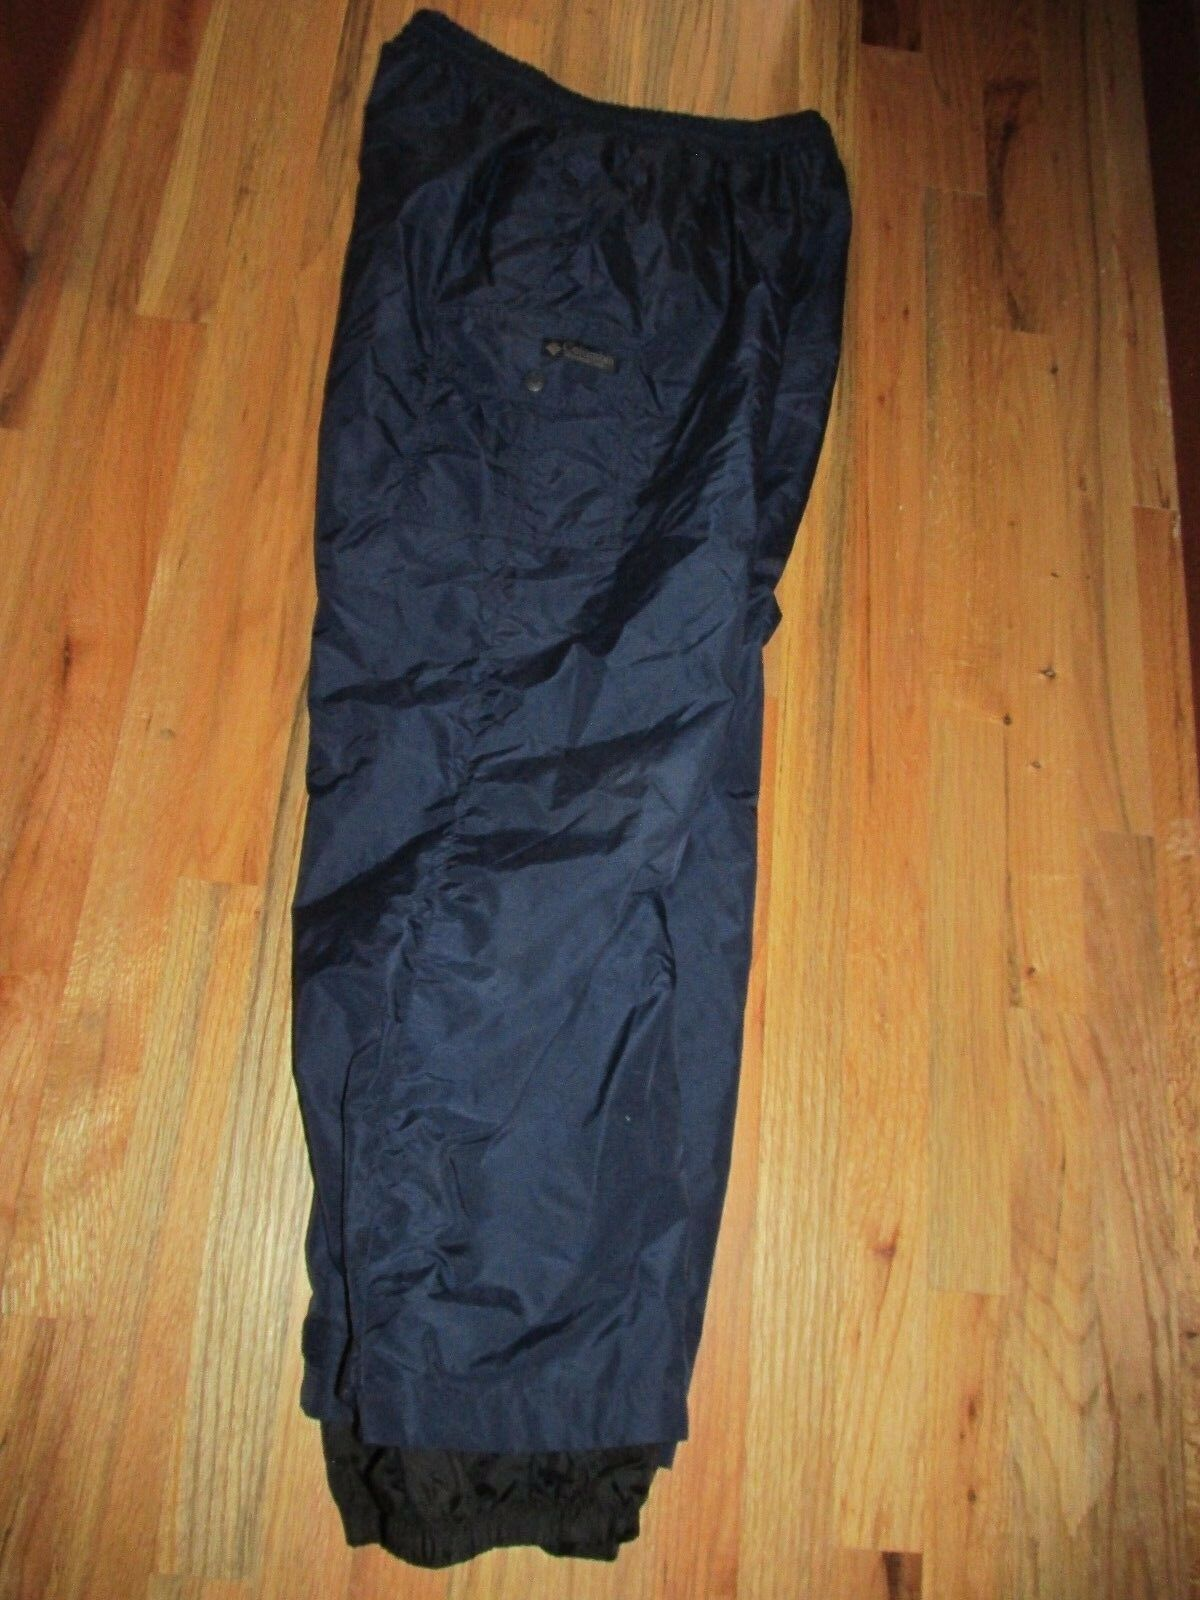 Columbus Vintage Navy Nylon Snowboarding Ski Pants Fully Lined Men's L AR31